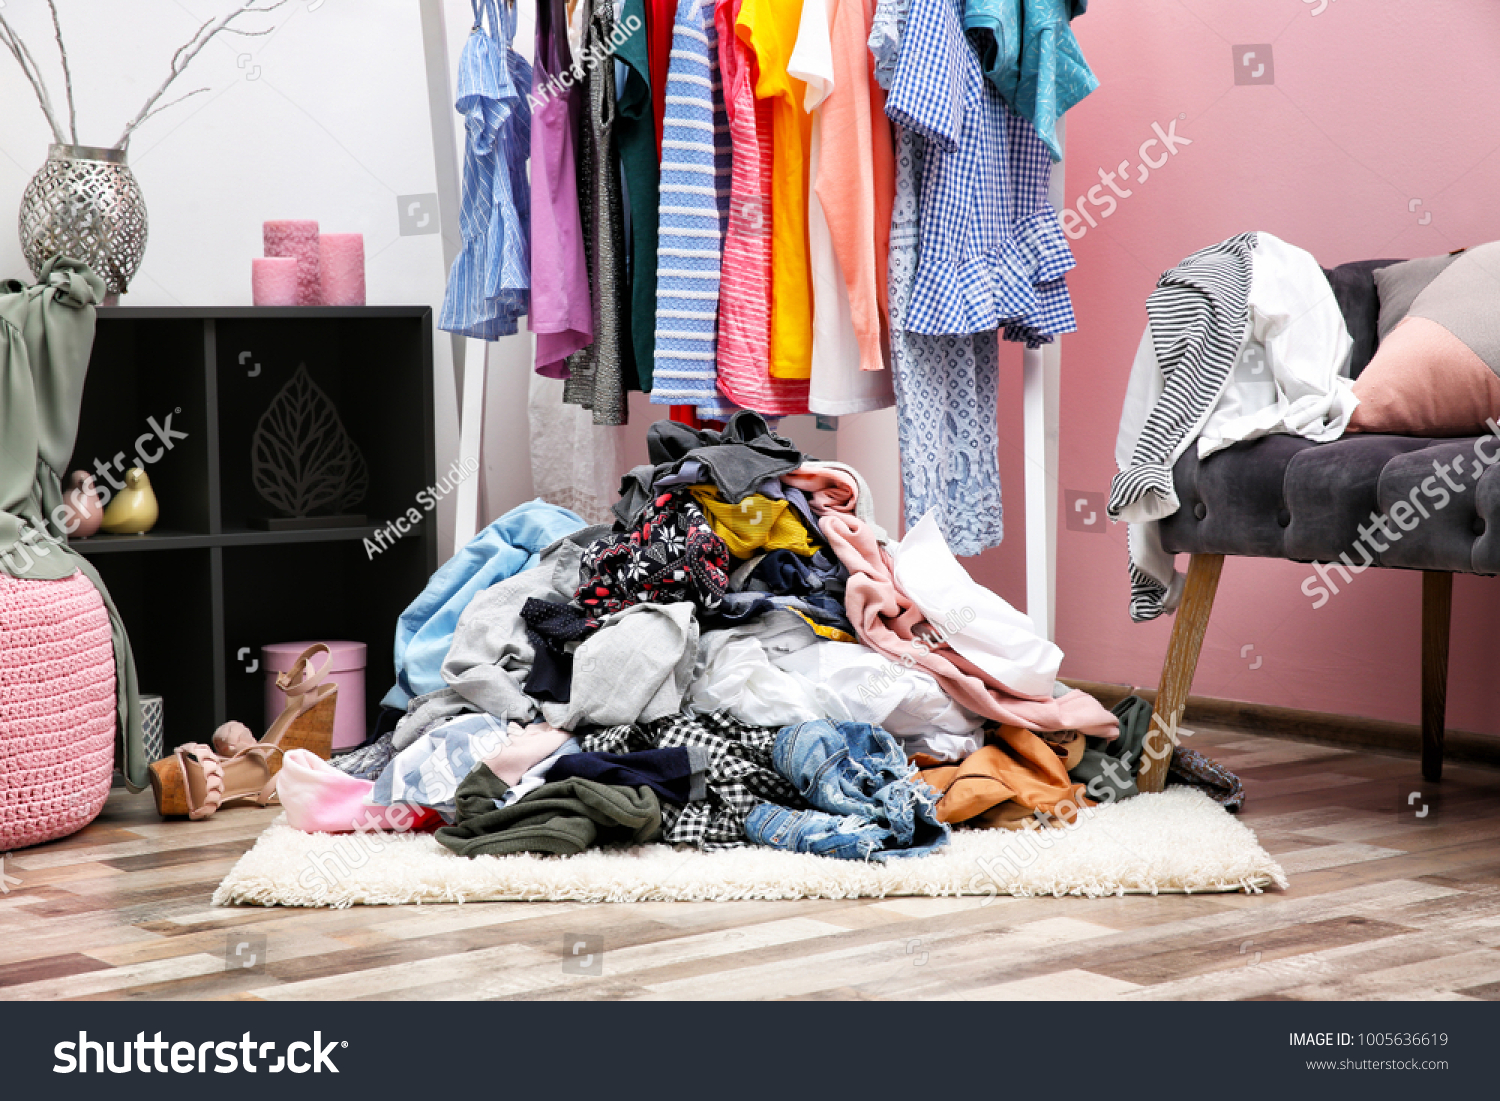 Messy dressing room interior with clothes rack #1005636619